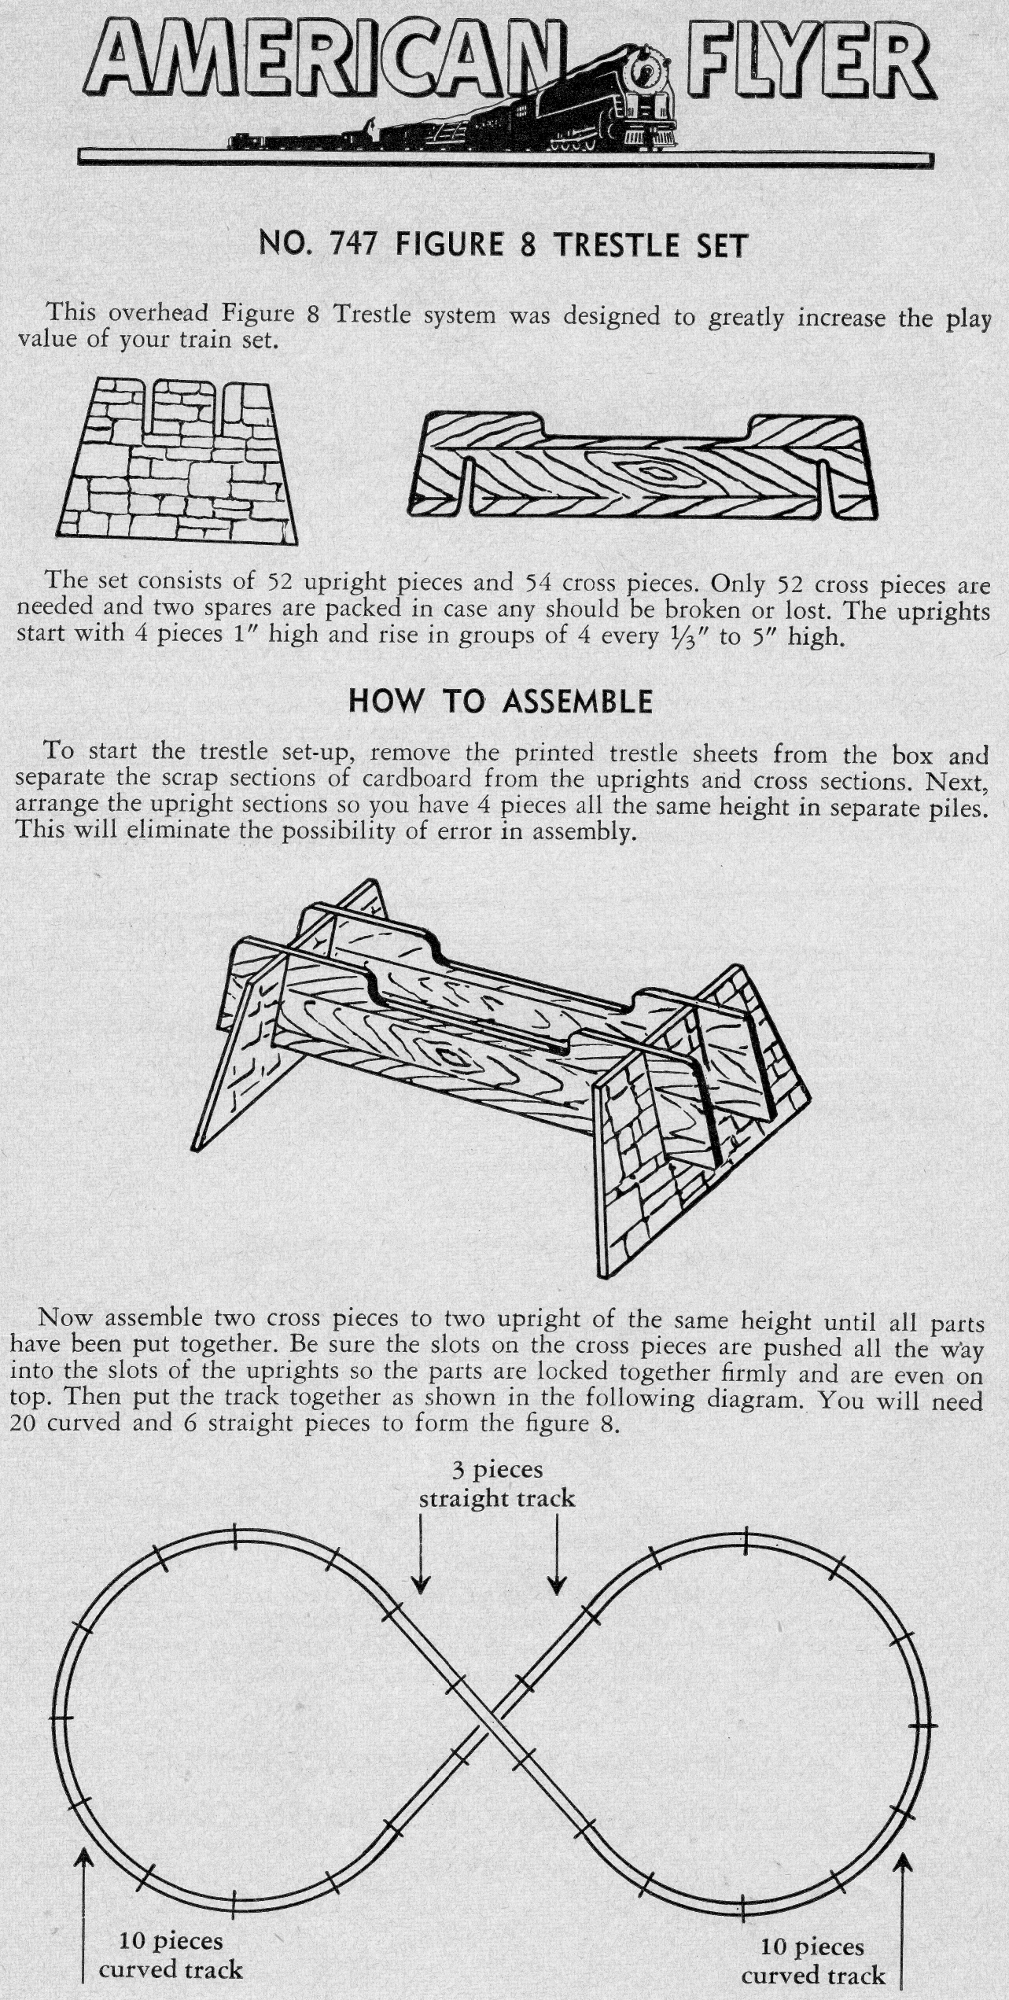 American Flyer Parts List Archives Page 10 Of 20 Traindr Locomotive Wiring Diagrams Trestle Set 747 Instructions